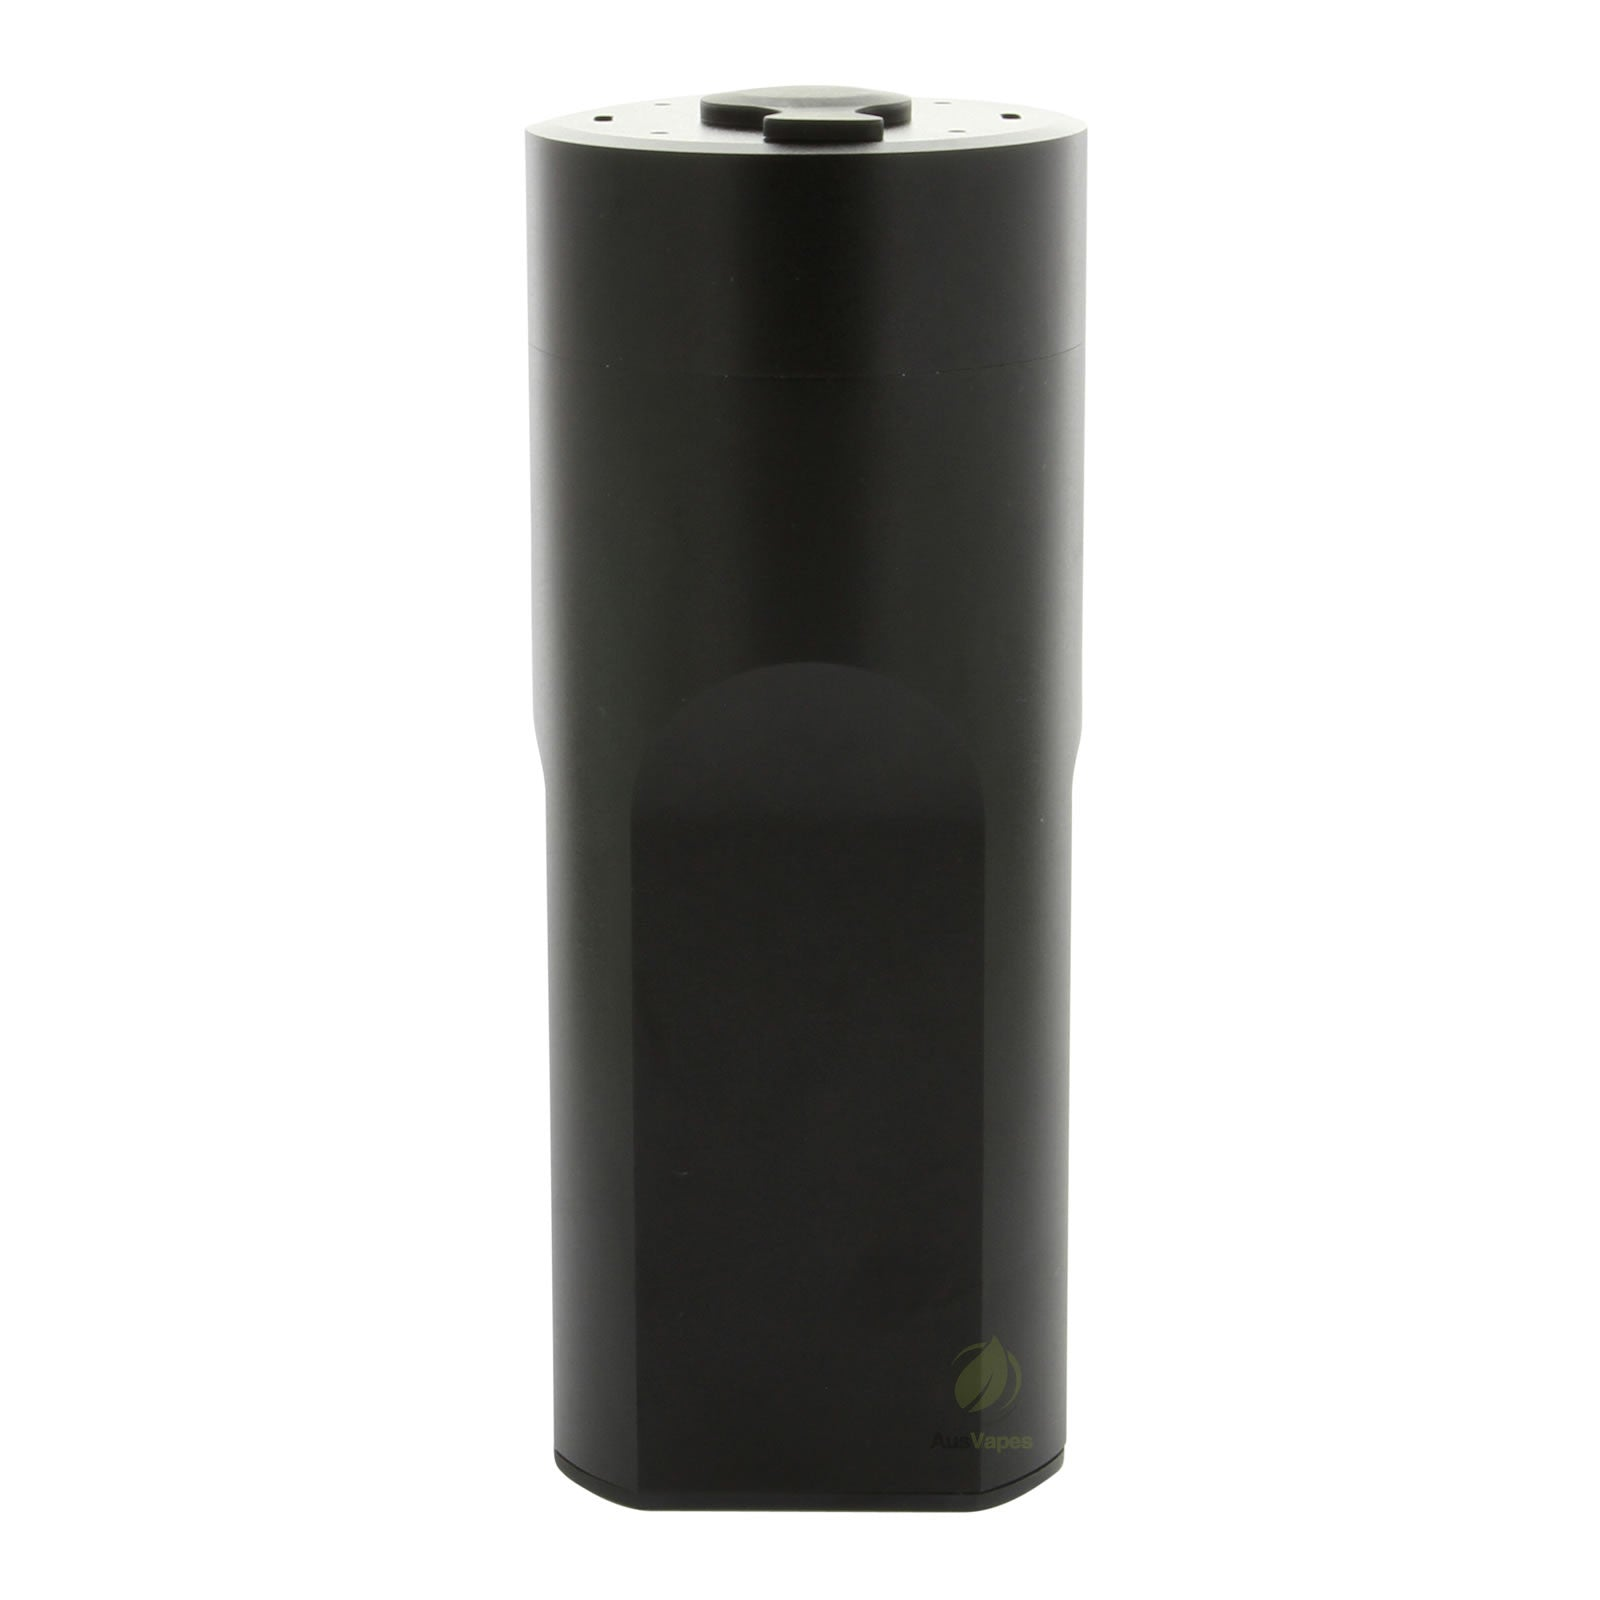 arizer solo vaporizer back view